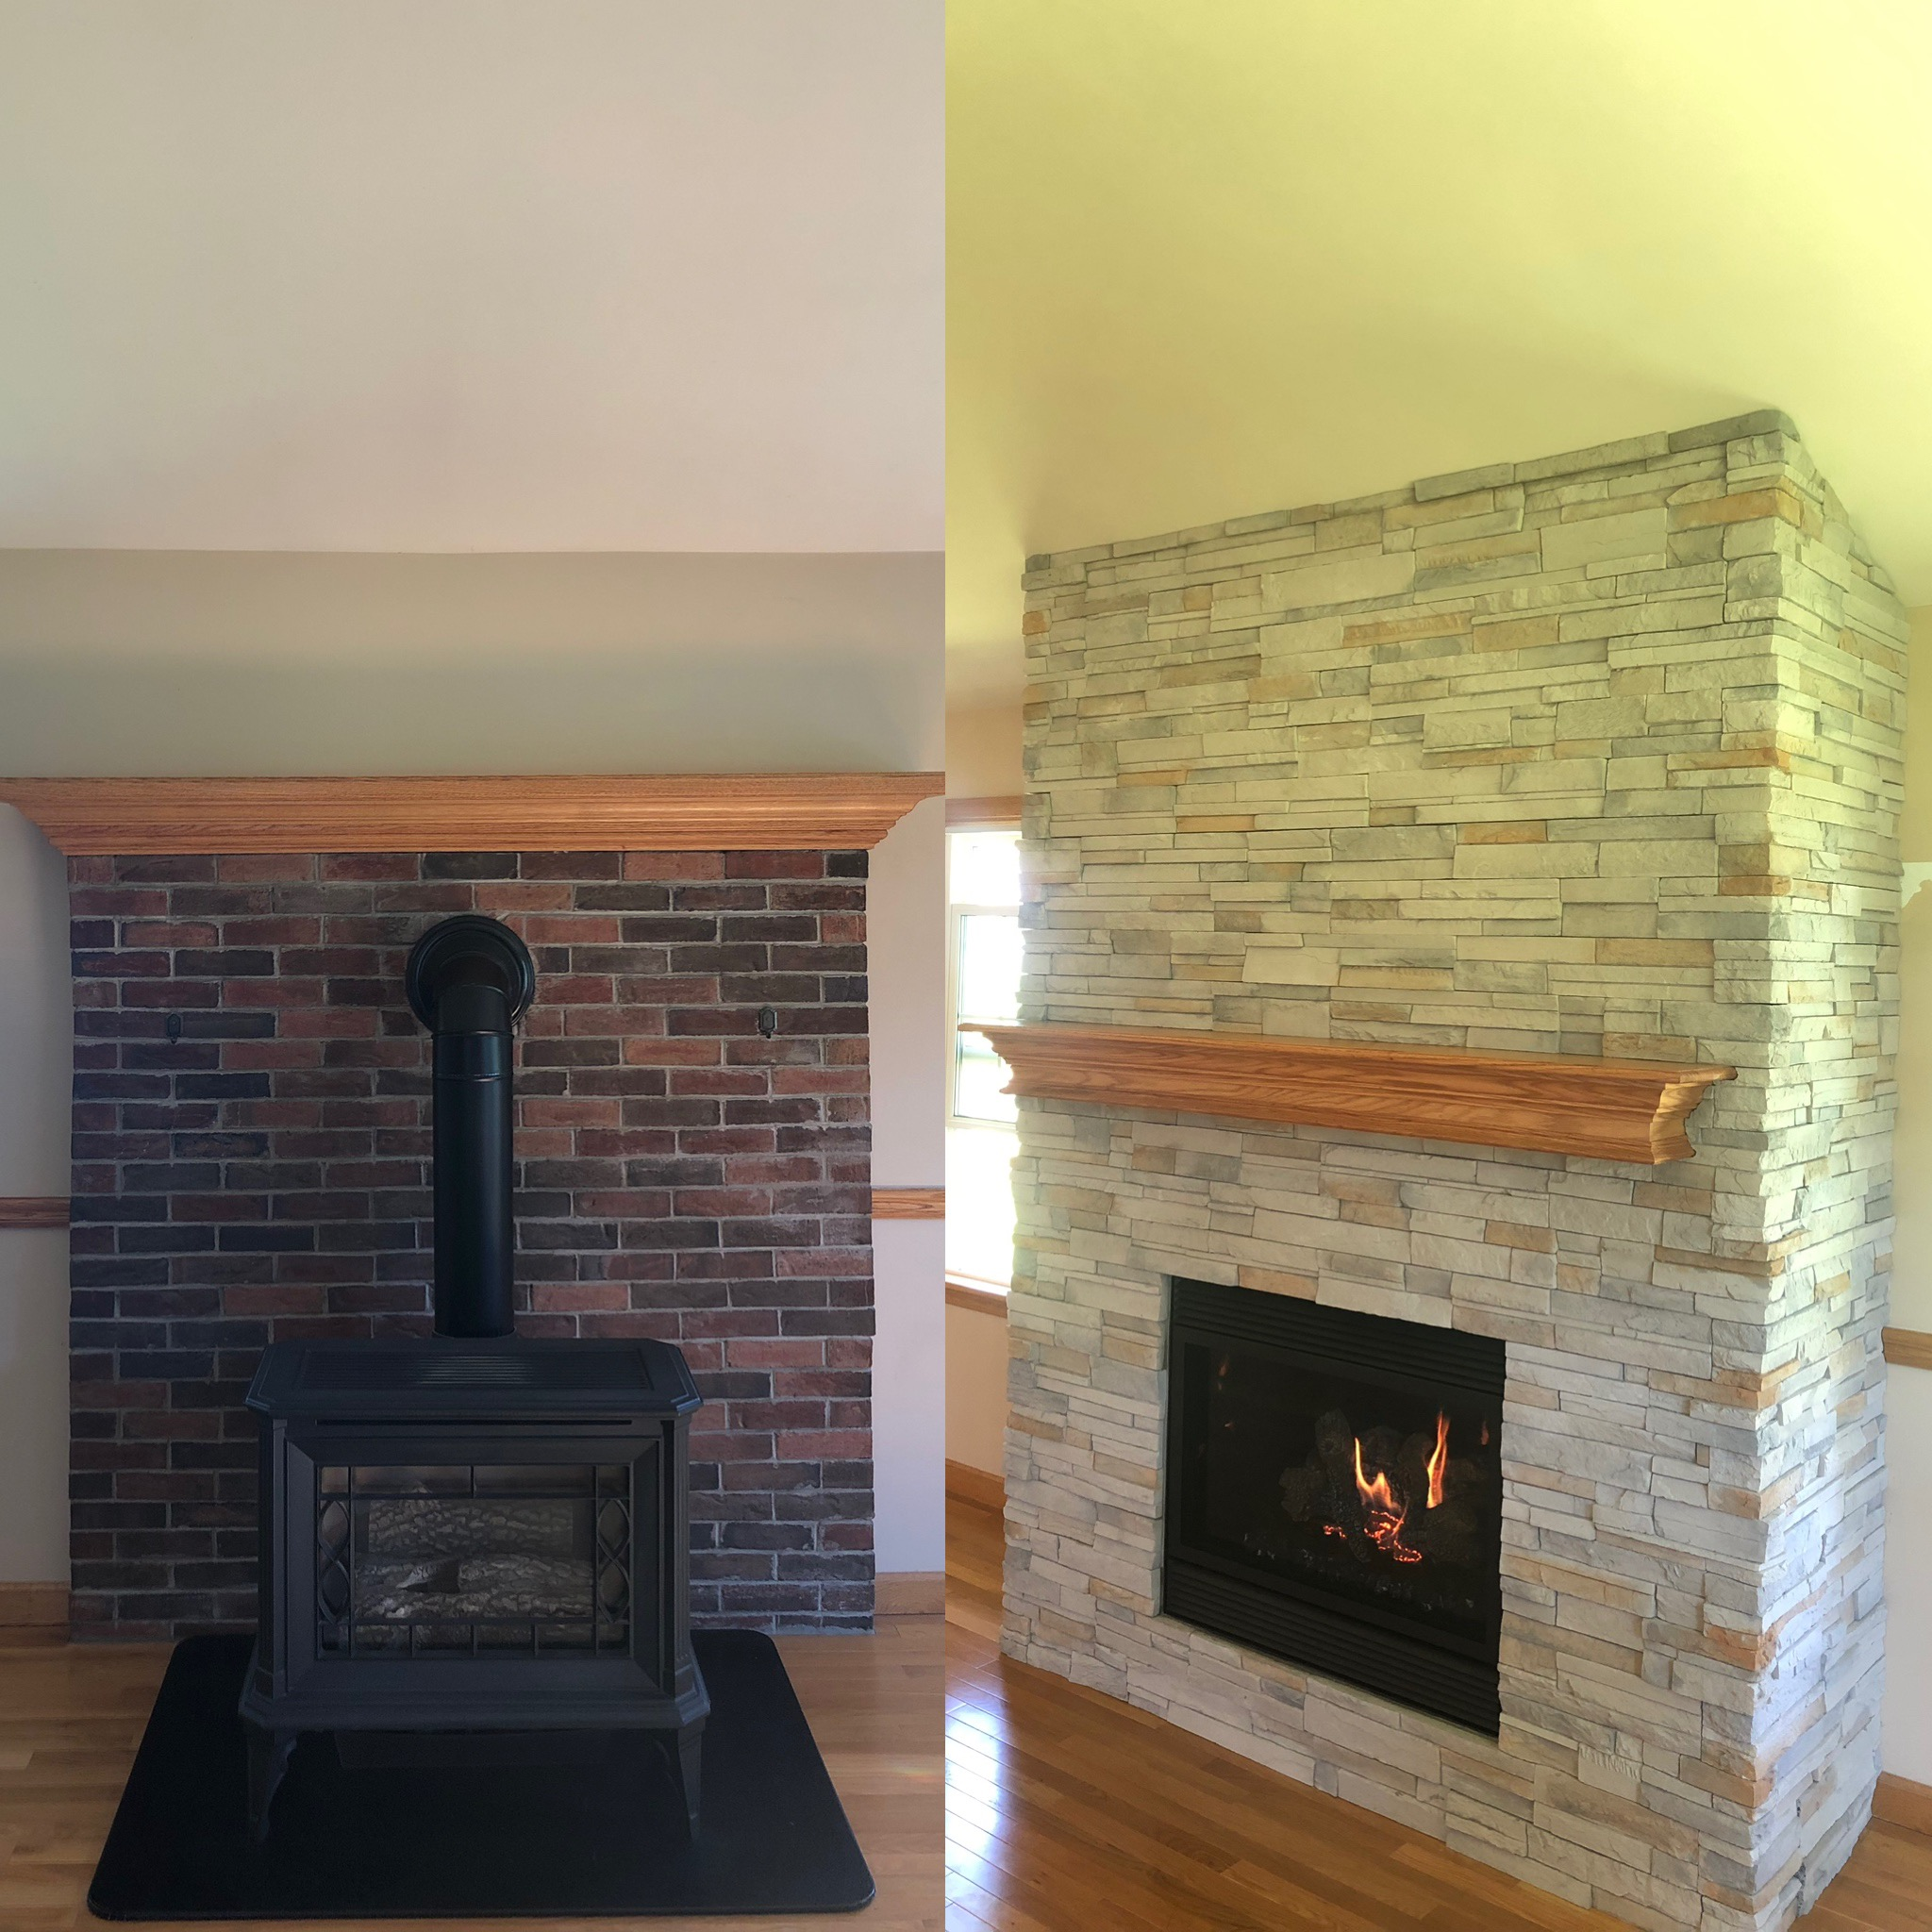 Image of a sleek 564 SpaceSaver by FireplaceX and the preexisting gas stove as the before.